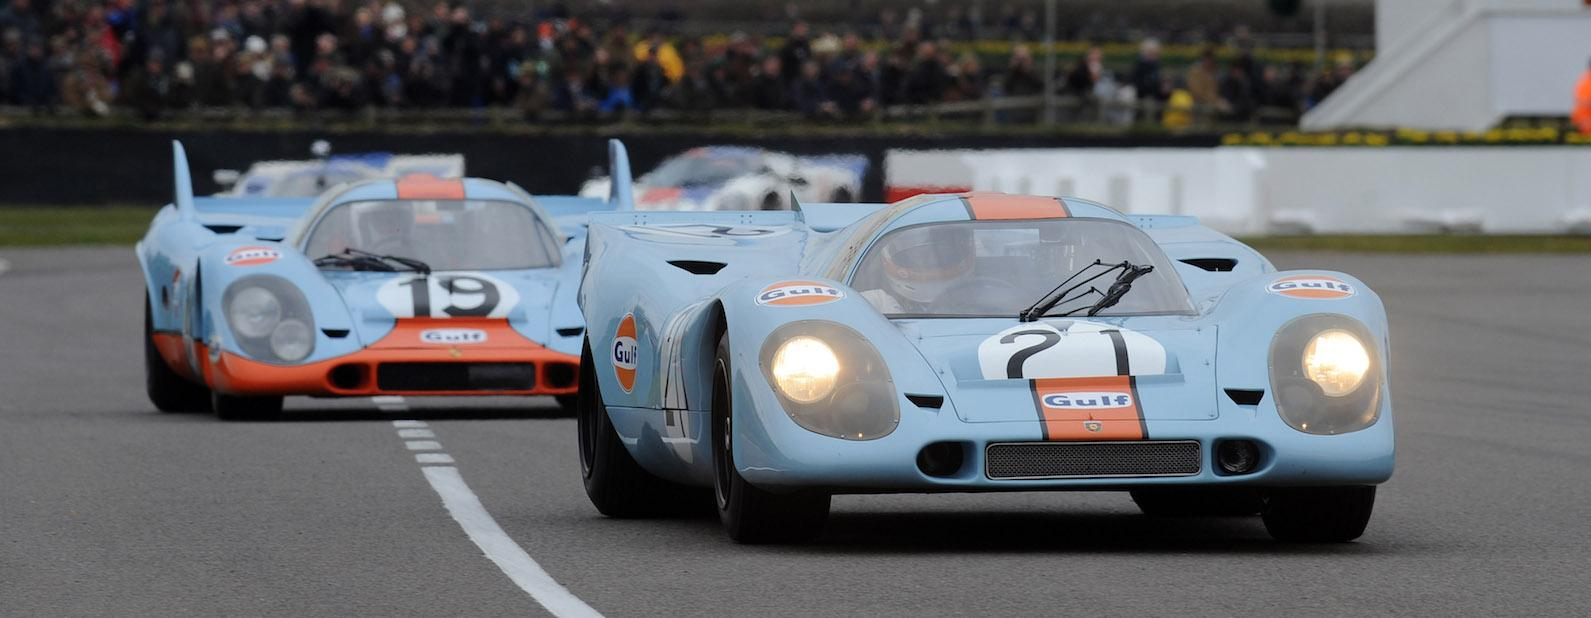 Historic Motorsport Round-up: Bell, Pescarolo, Ludwig, Werner to star at Le Mans Classic